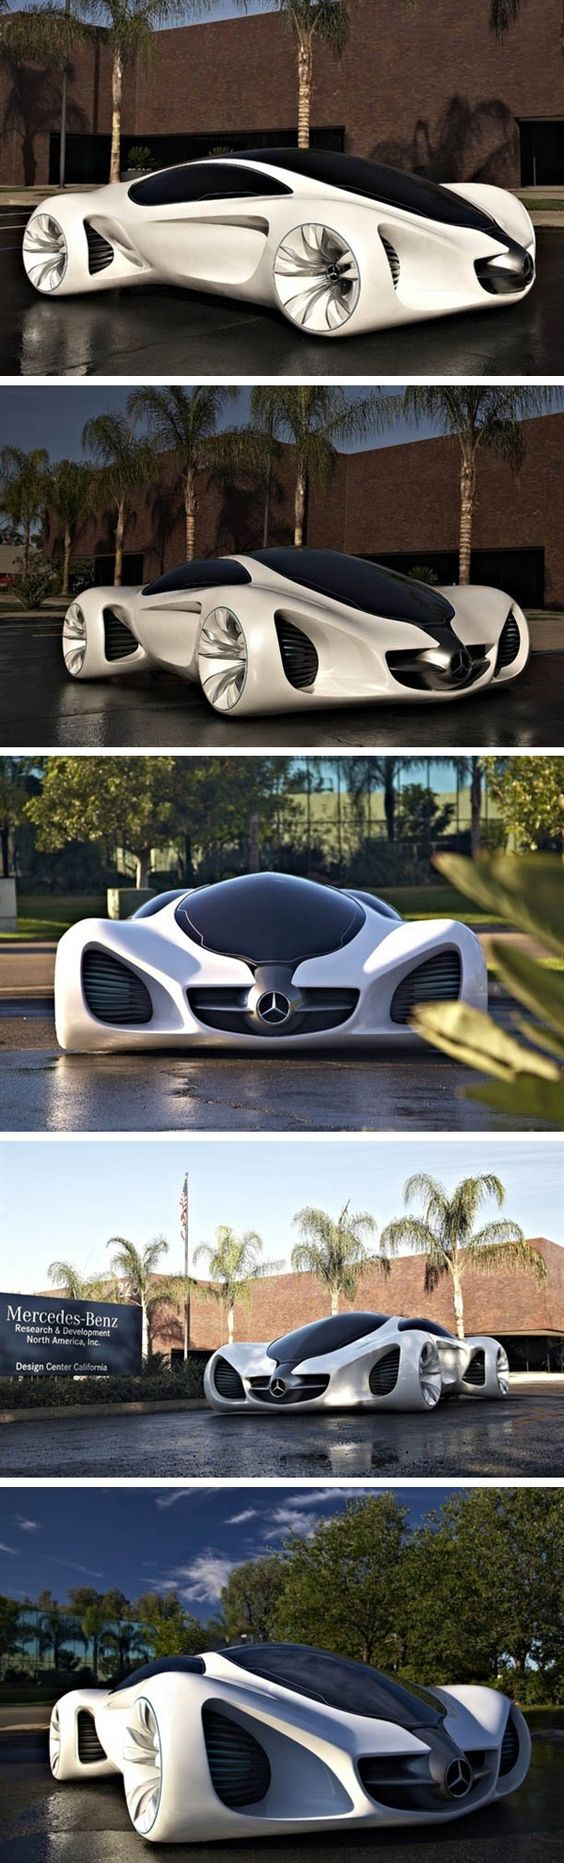 Mercedes Biome Concept – Impressive Car - The car is literally grown from seeds. Mercedes revealed their work of art at the Los Angeles Auto Show 2010. The Mercedes designers imagined this lab grown car to be made of a currently non-available or existent material called BioFibre. The Car would run on a fuel power called BioNectar4534, but like the BioFibre it doesn't exist.  The car would be entirely biodegradable and give off no harmful gases - nature friendly from beginning to end...x: